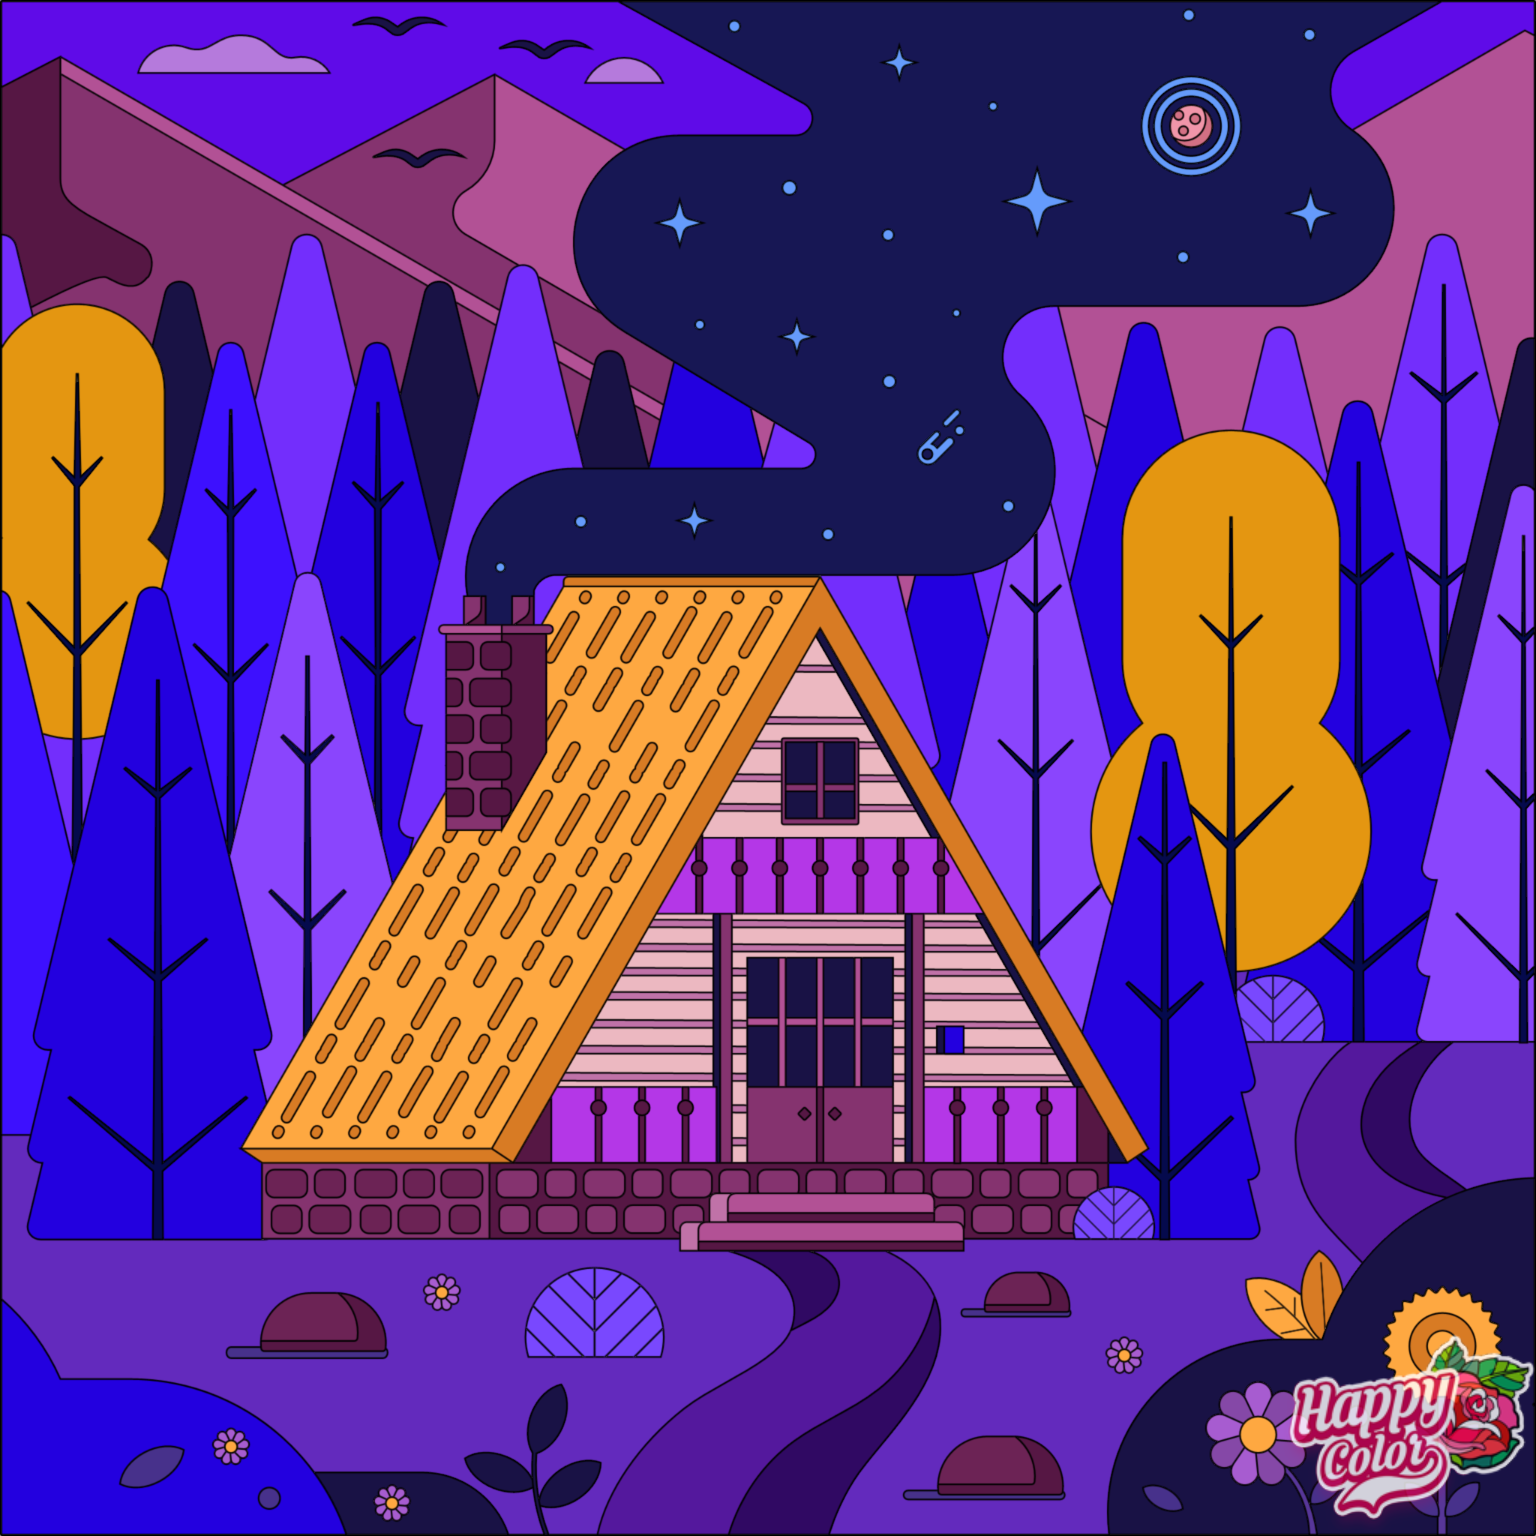 coloring book app image of a ski chalet at night